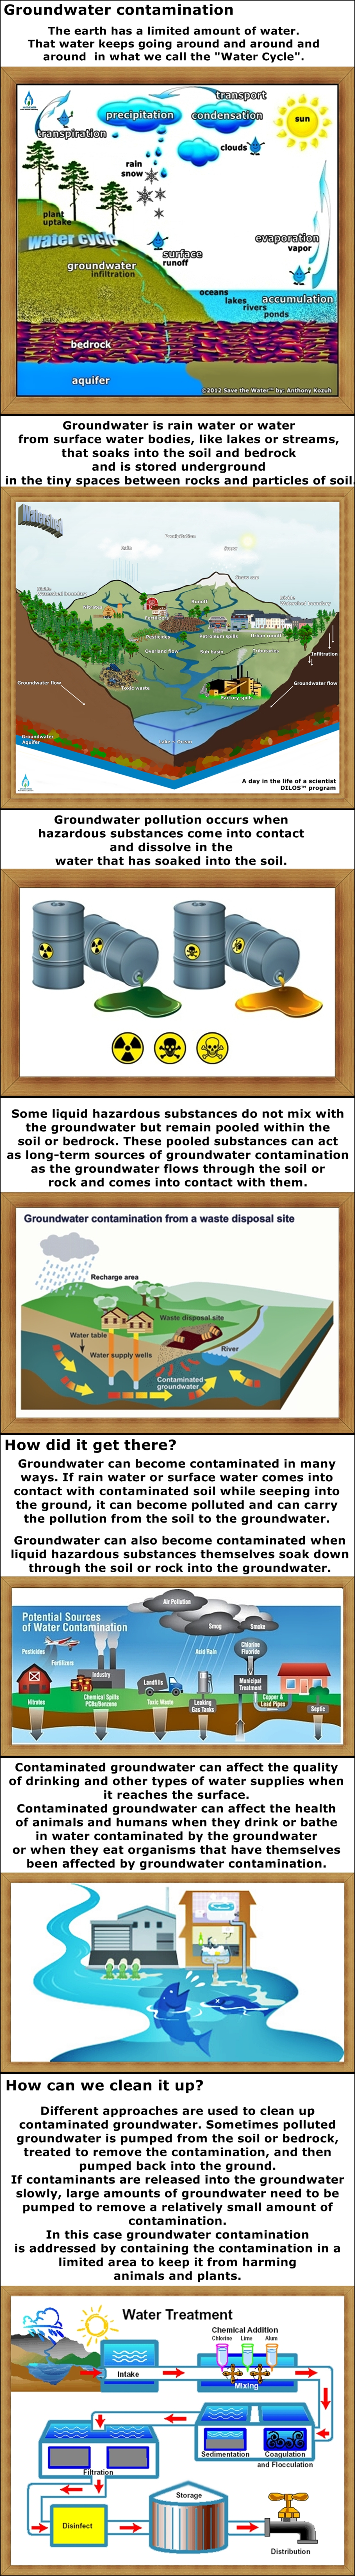 Groundwater can become contaminated in many ways. If rain water or surface water comes into contact with contaminated soil while seeping into the ground, it can become polluted and can carry the pollution from the soil to the groundwater. Groundwater can also become contaminated when liquid hazardous substances themselves soak down through the soil or rock into the groundwater. Some liquid hazardous substances do not mix with the groundwater but remain pooled within the soil or bedrock. These pooled substances can act as long-term sources of groundwater contamination as the groundwater flows through the soil or rock and comes into contact with them.